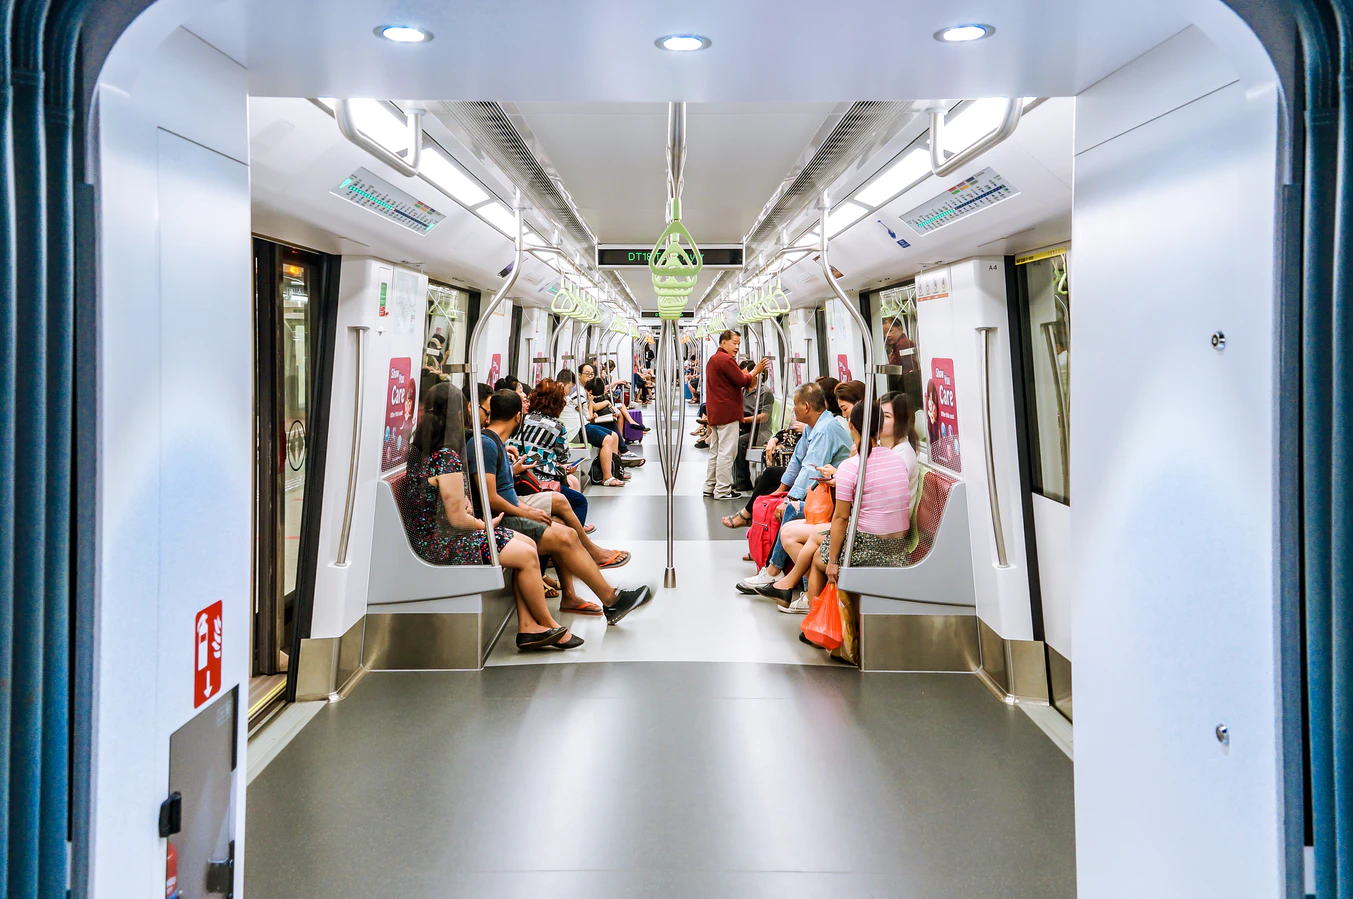 Travel via MRT using Google pay in Singapore